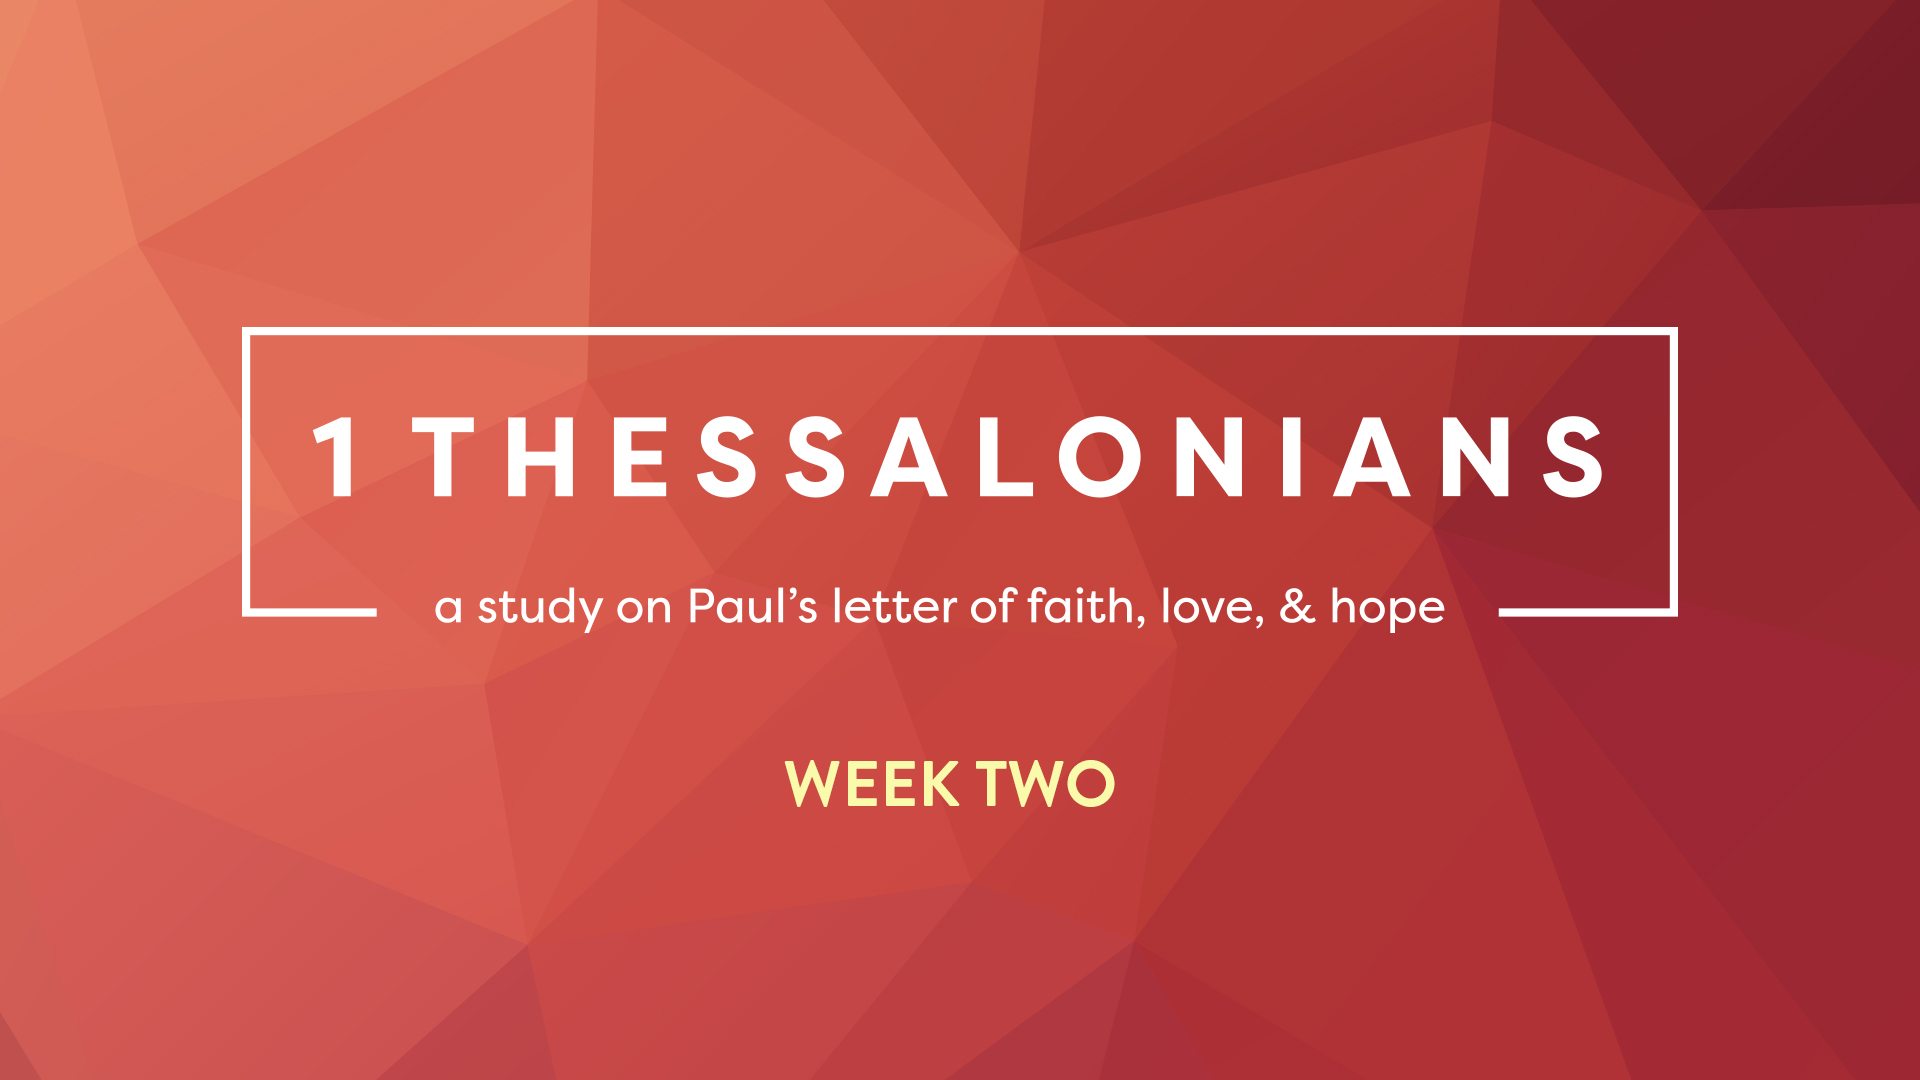 1 Thessalonians: Week Two